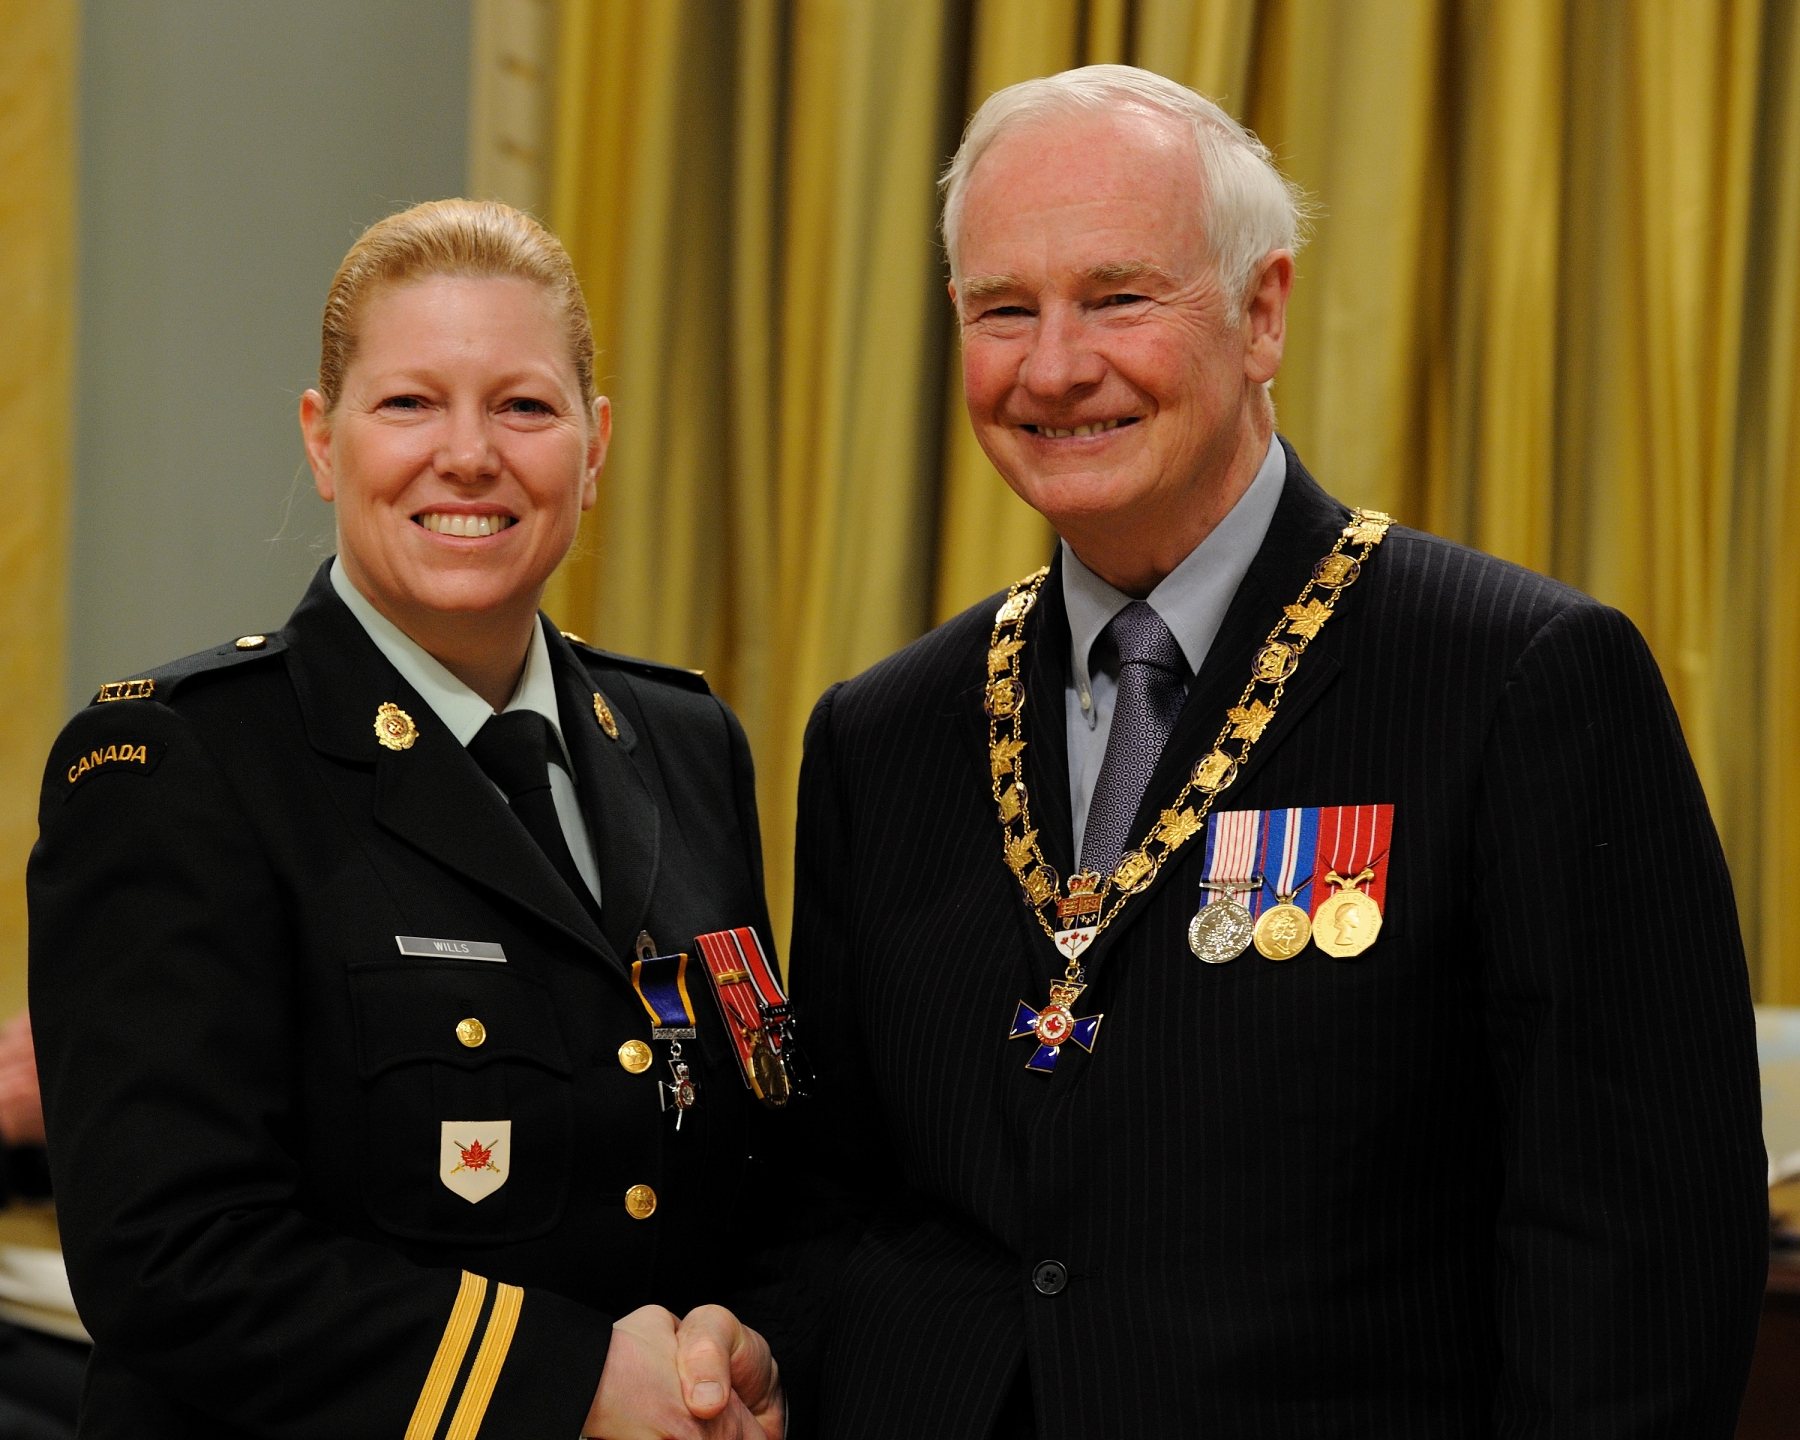 His Excellency presented the Order of Military Merit at the Member level (M.M.M.) to Captain Shannon Wills, M.M.M., C.D., 4th Canadian Ranger Patrol Group, Victoria, British Columbia.